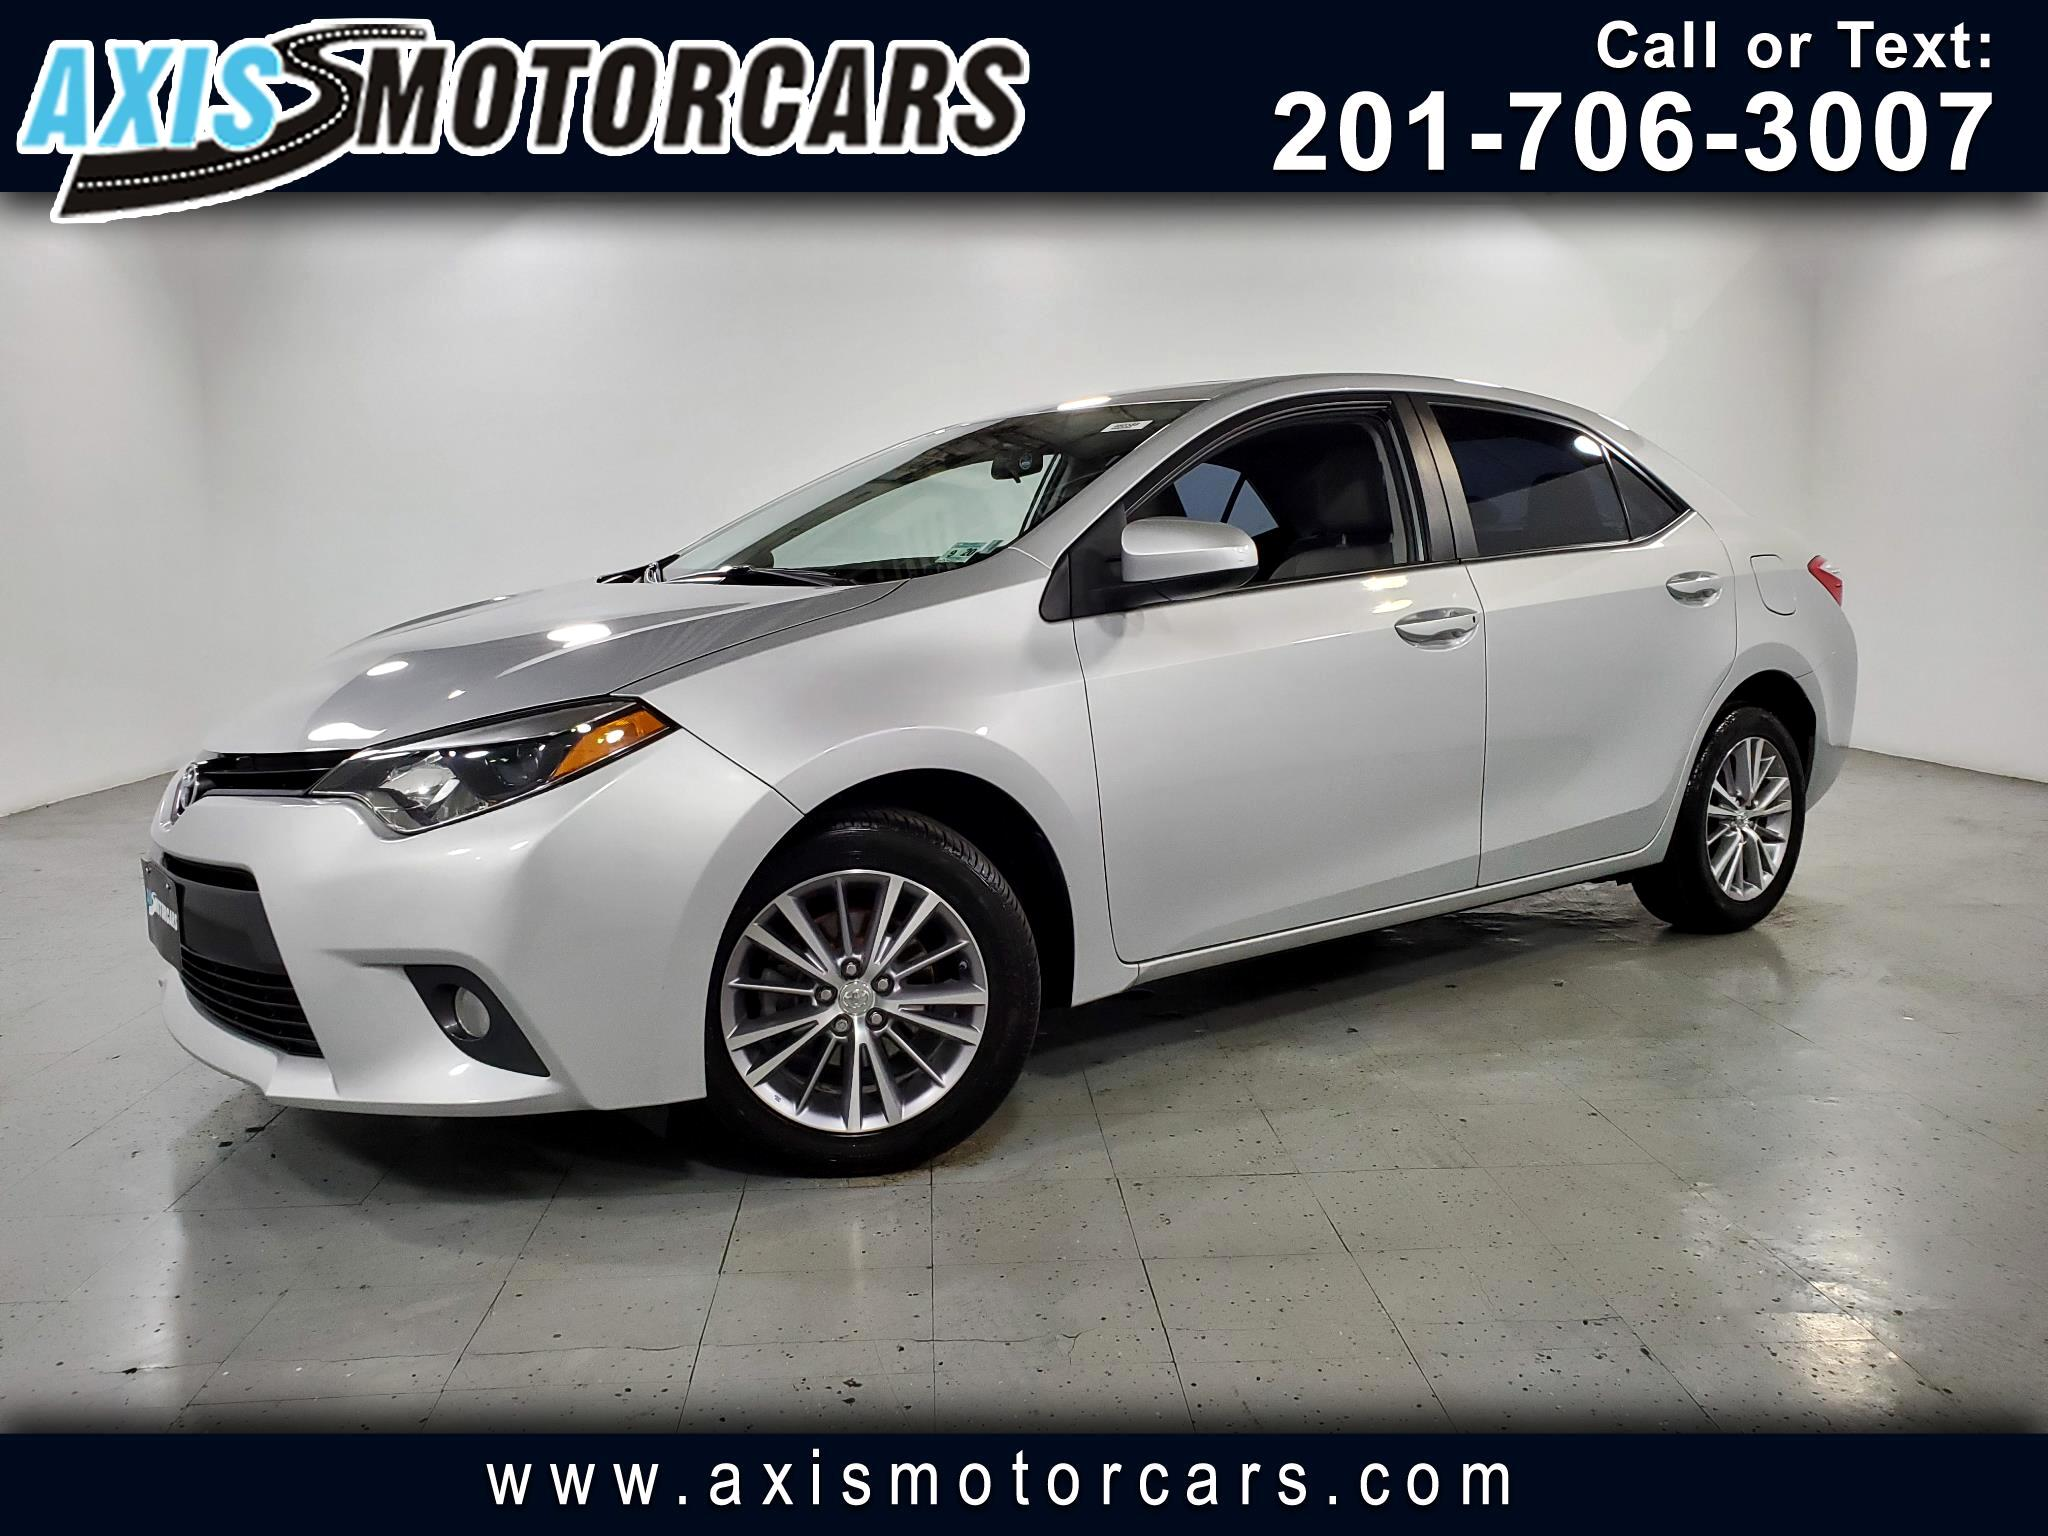 2015 Toyota Corolla w/Sunroof Backup Camera